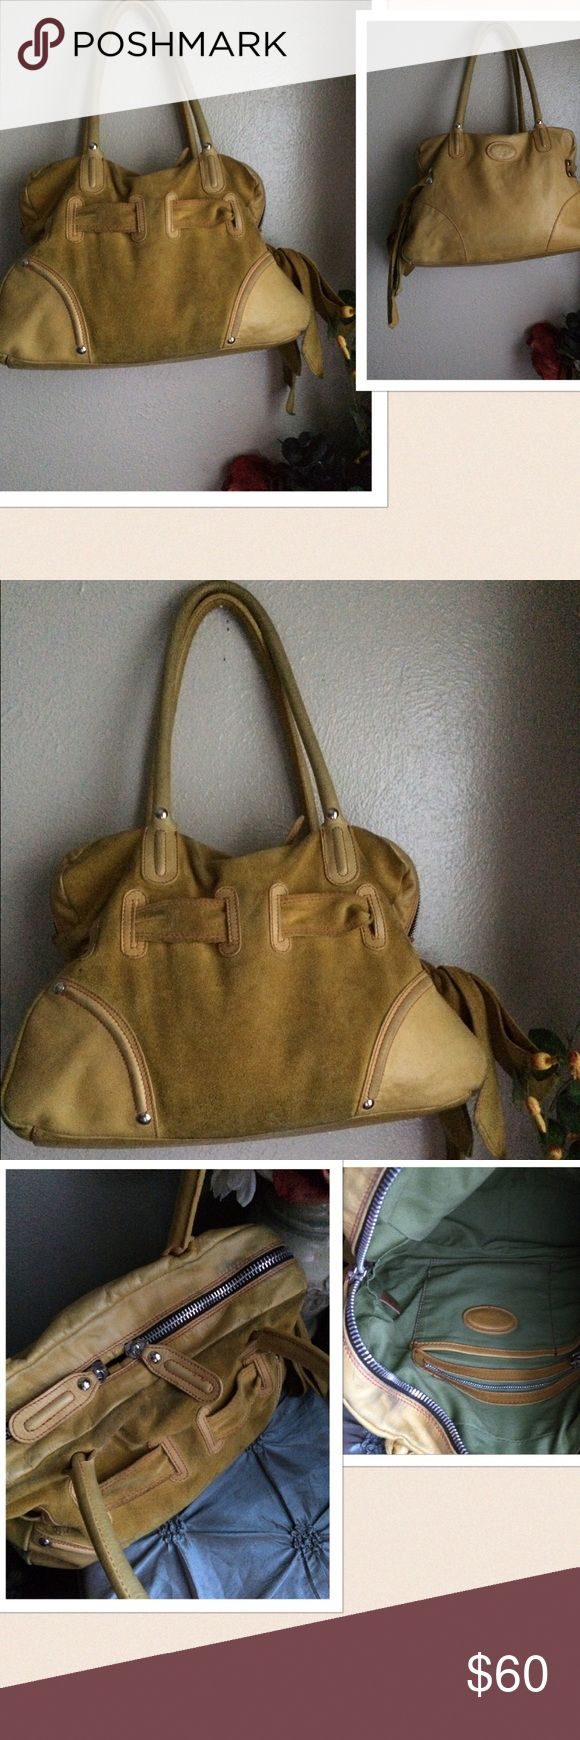 Sofia C Italian Handbag Sofia C Italian Handbag. Material: Leather and Suede. Color: Mustard. 2 way zipper closure. Belted design with tie bow closure. Inner compartments, fully lined. Preowned with some visible dirt marks on the outside, can be easily cleaned by an expert. Otherwise has lots of wear left. In Great condition. If this condition is not right for you do not purchase. Sofia C Bags Shoulder Bags